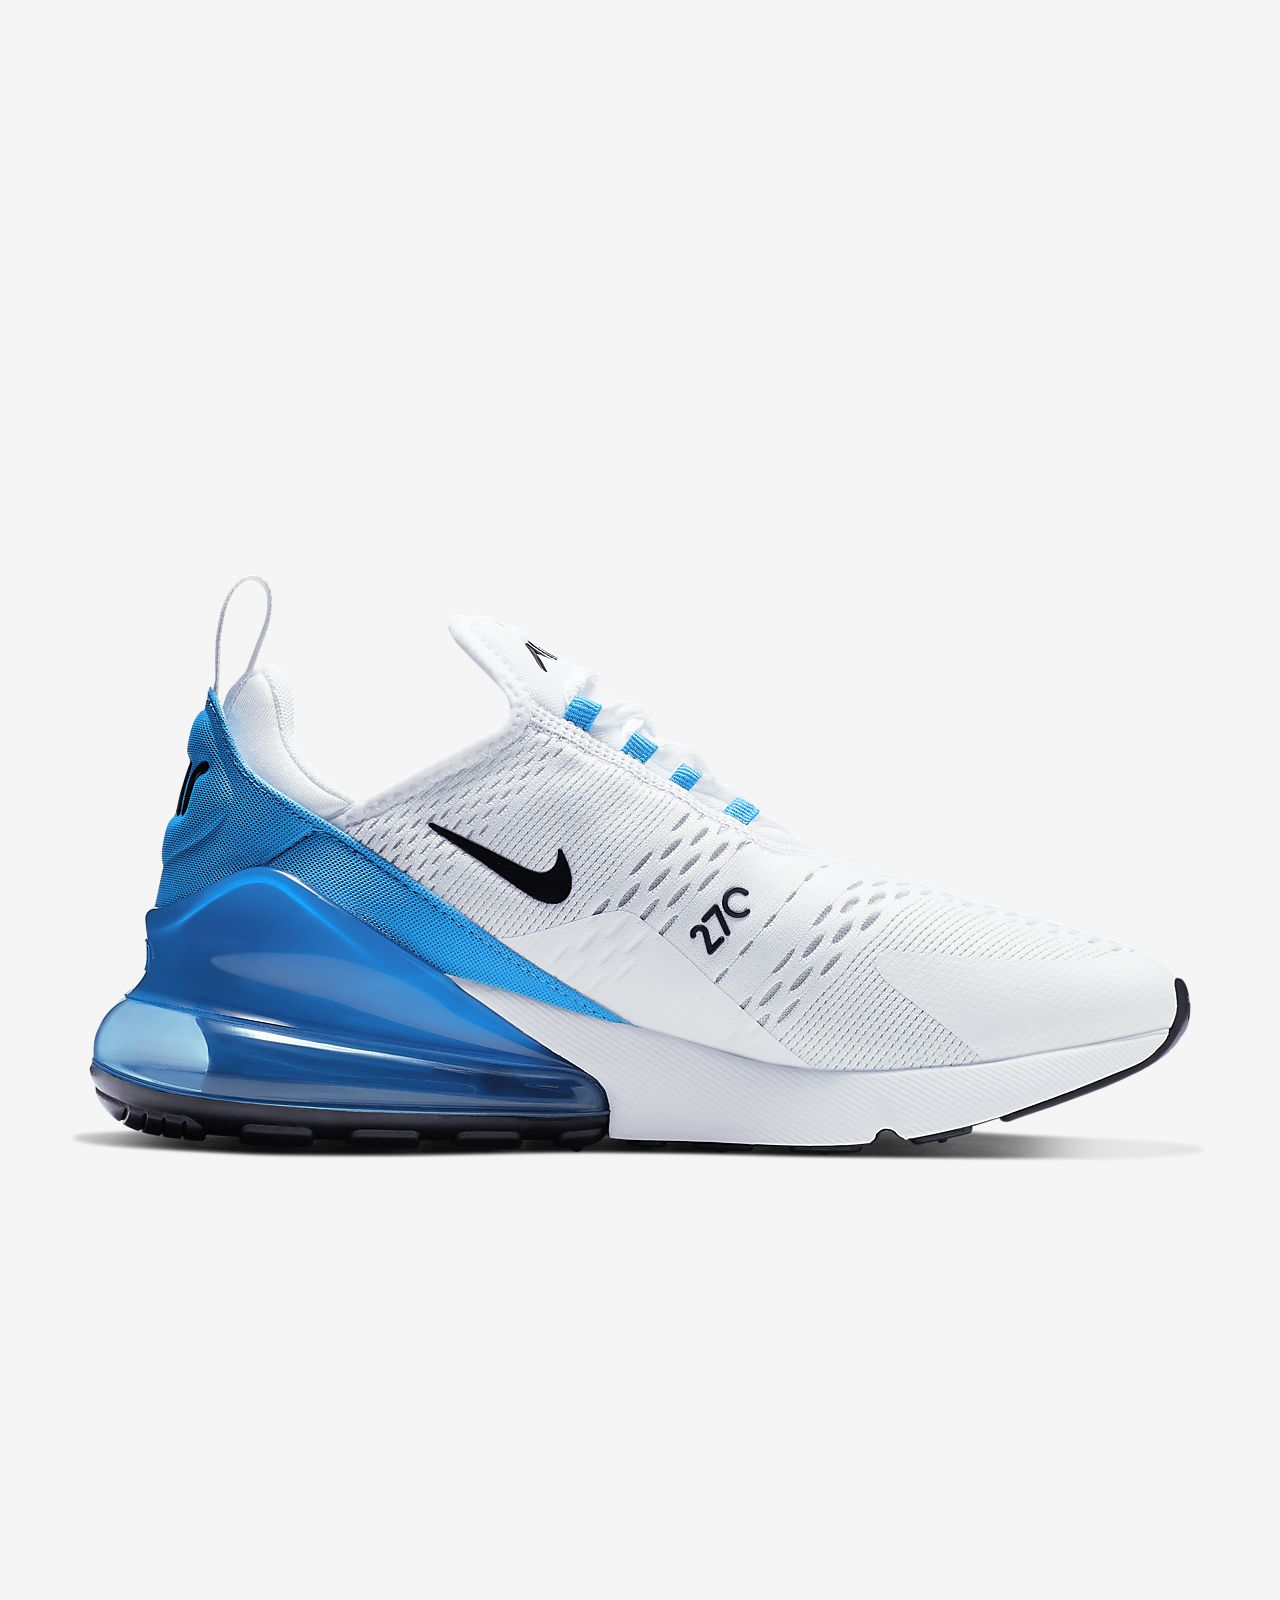 lowest price 5271c 477a6 ... Nike Air Max 270 Men s Shoe